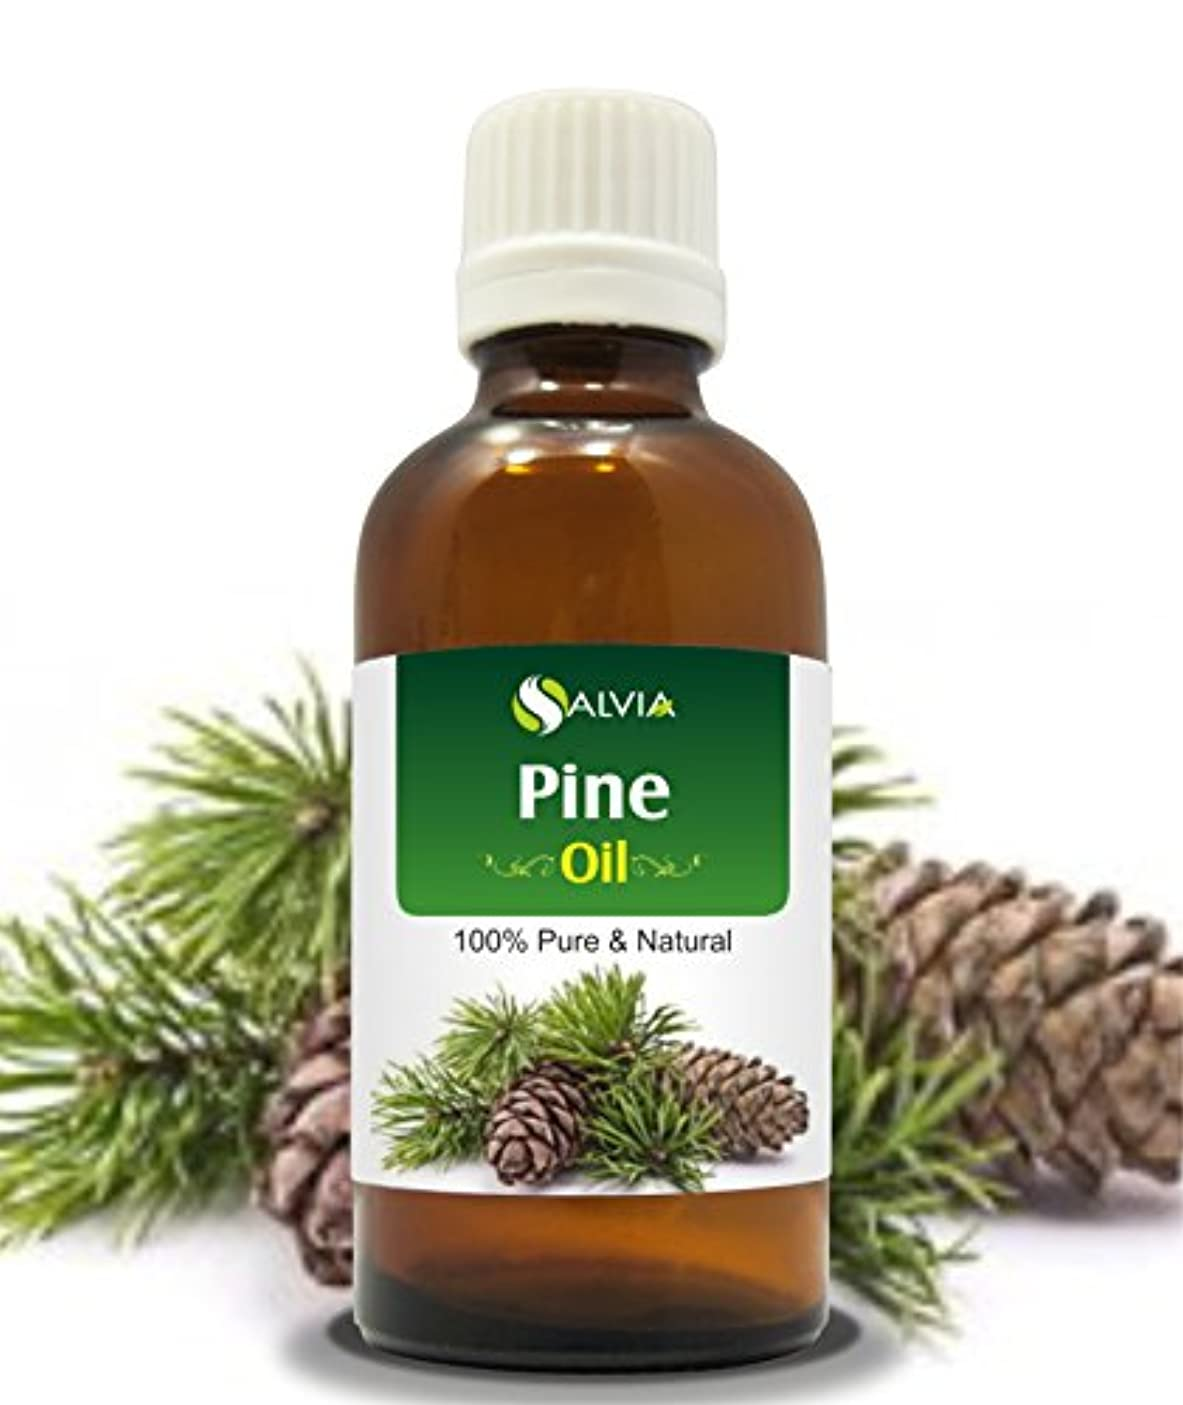 インディカ犯す起訴するPINE OIL 100% NATURAL PURE UNDILUTED UNCUT ESSENTIAL OIL 30ML